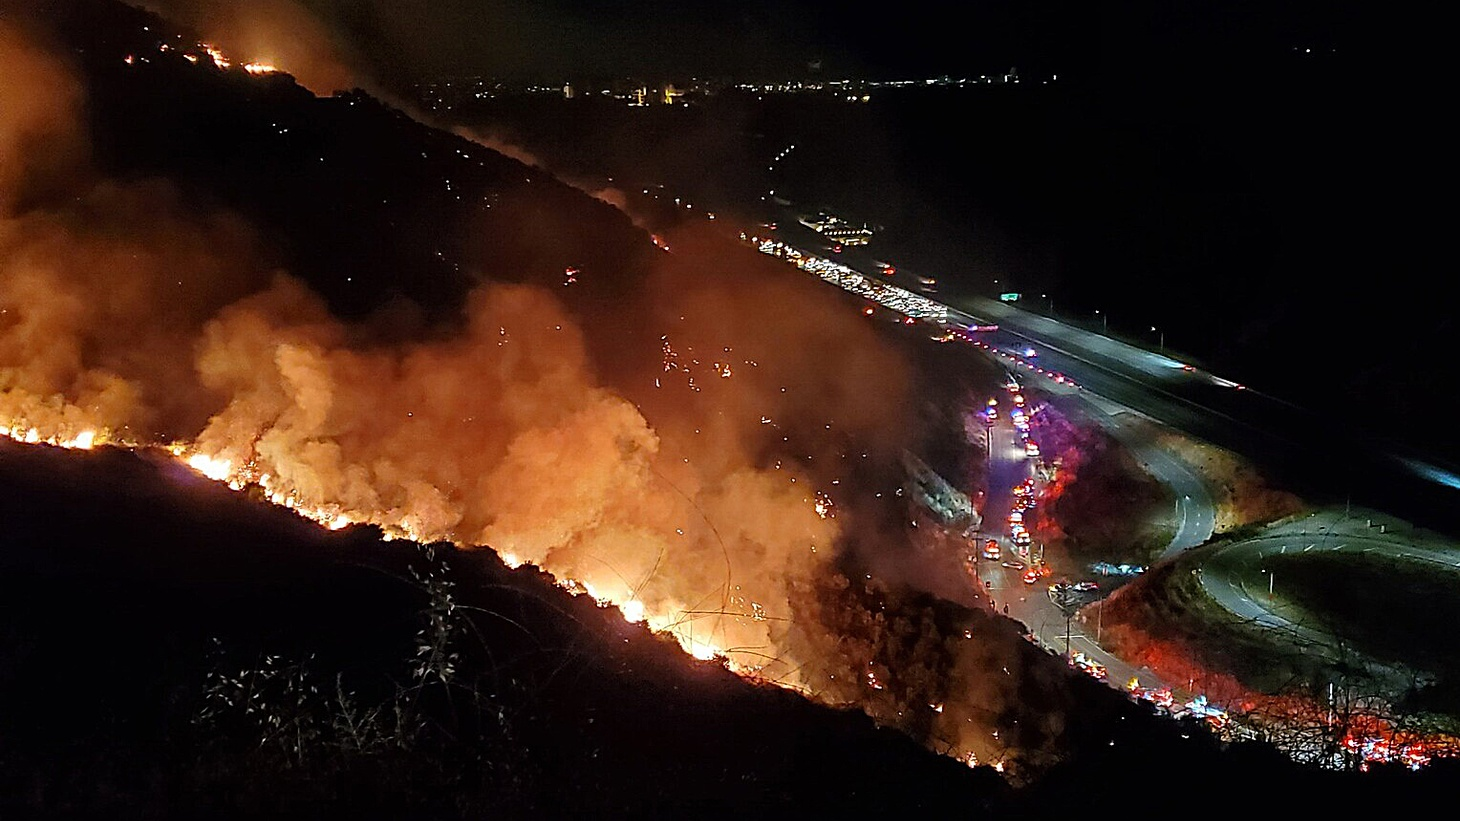 Firefighters and authorities work to extinguish a fire near the Getty Center in Los Angeles, June 10, 2020.